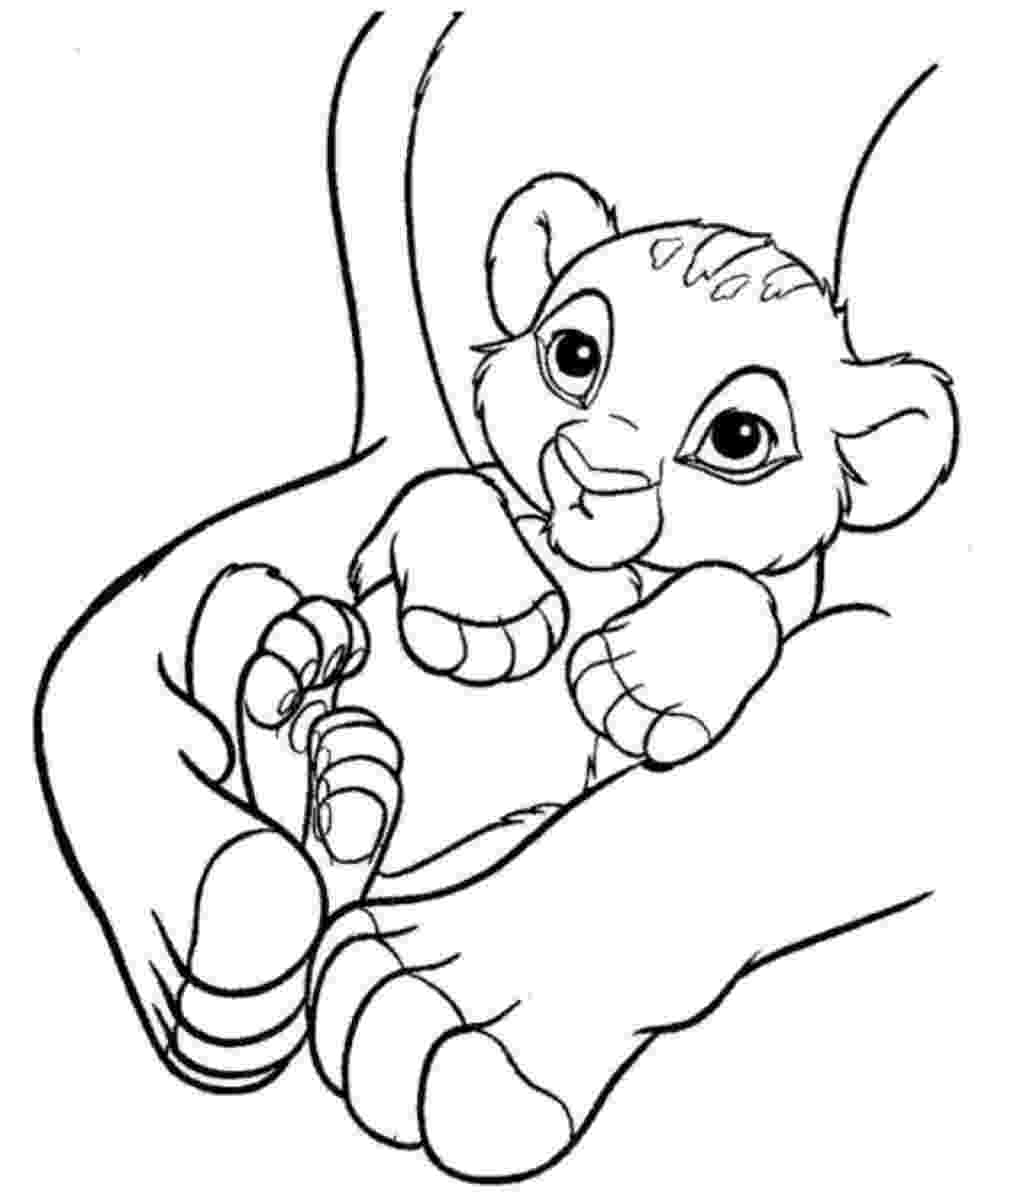 coloring lion fun with lion coloring pages coloring lion